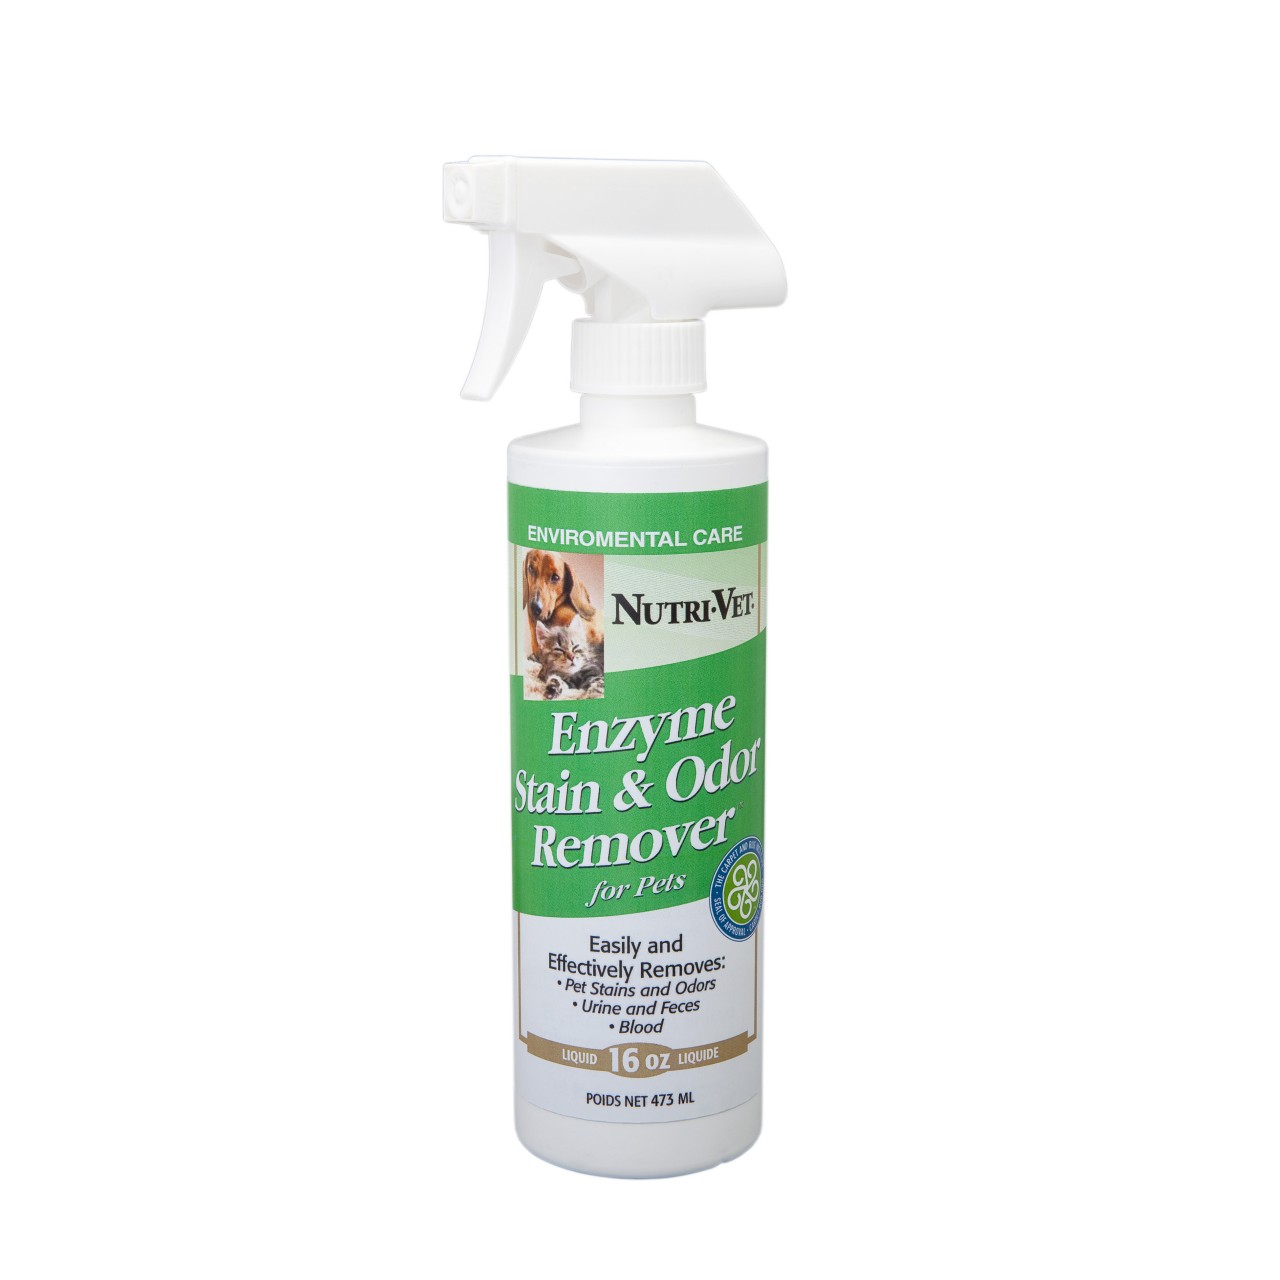 Nutri-Vet Enzyme Stain and Odor Remover